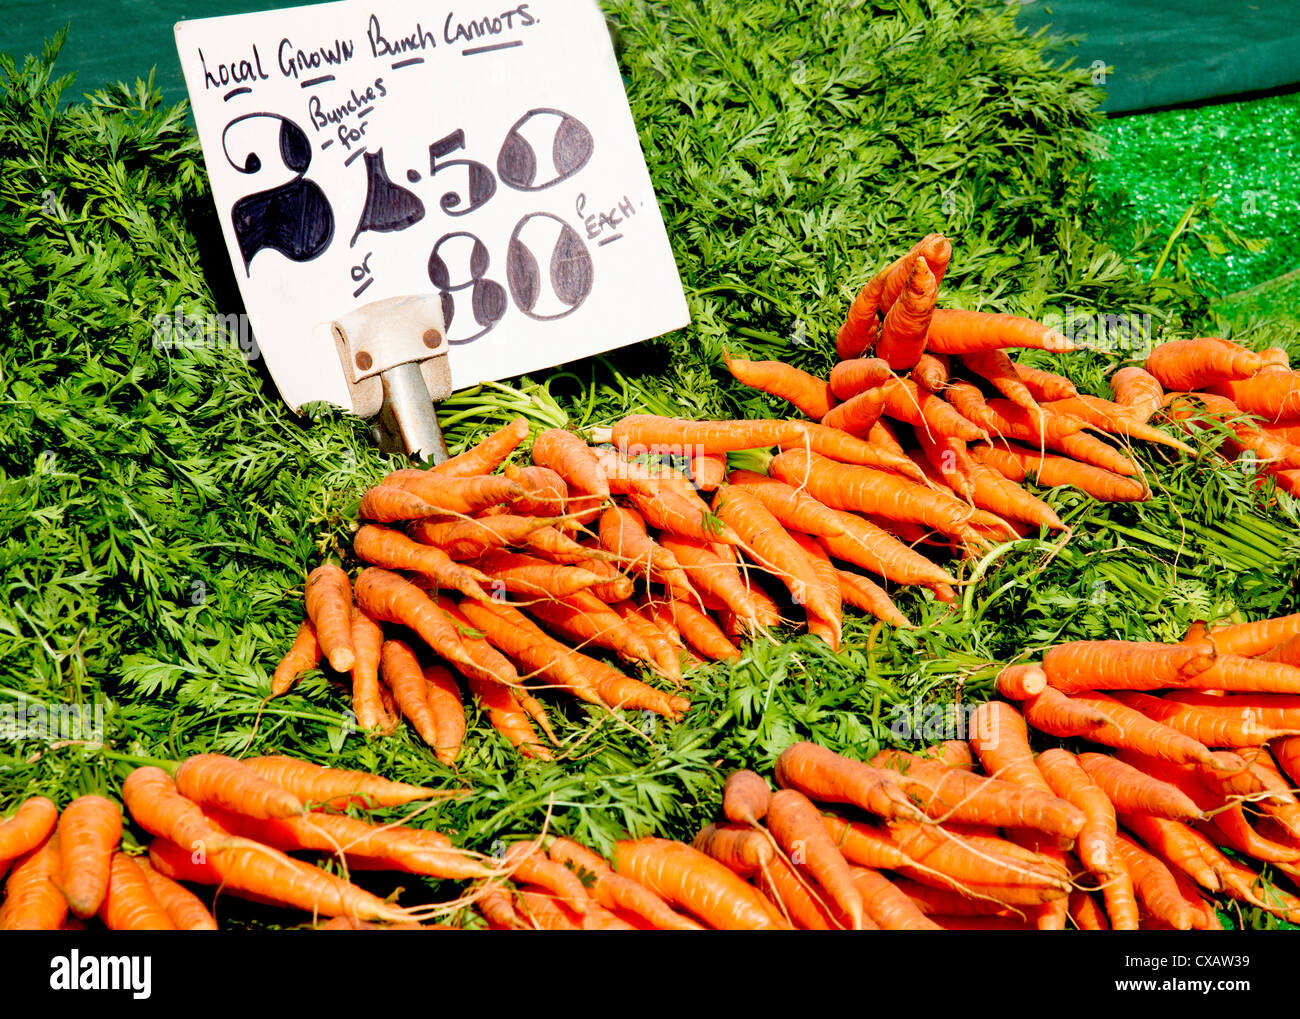 Carots on display in a market stall Stock Photo